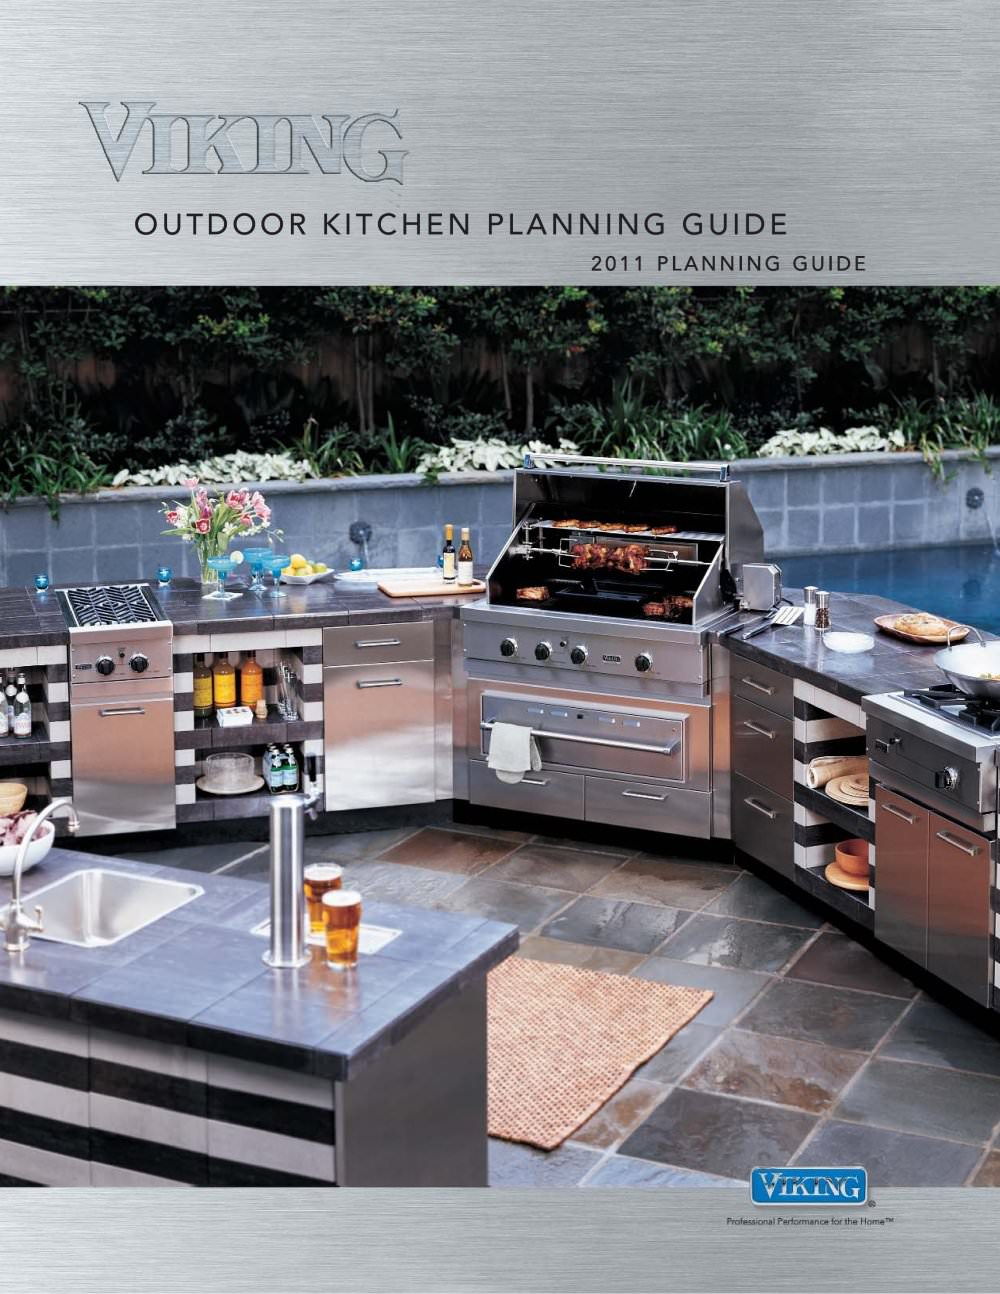 Elegant VIKING OUTDOOR KITCHEN PLANNING GUIDE   1 / 27 Pages